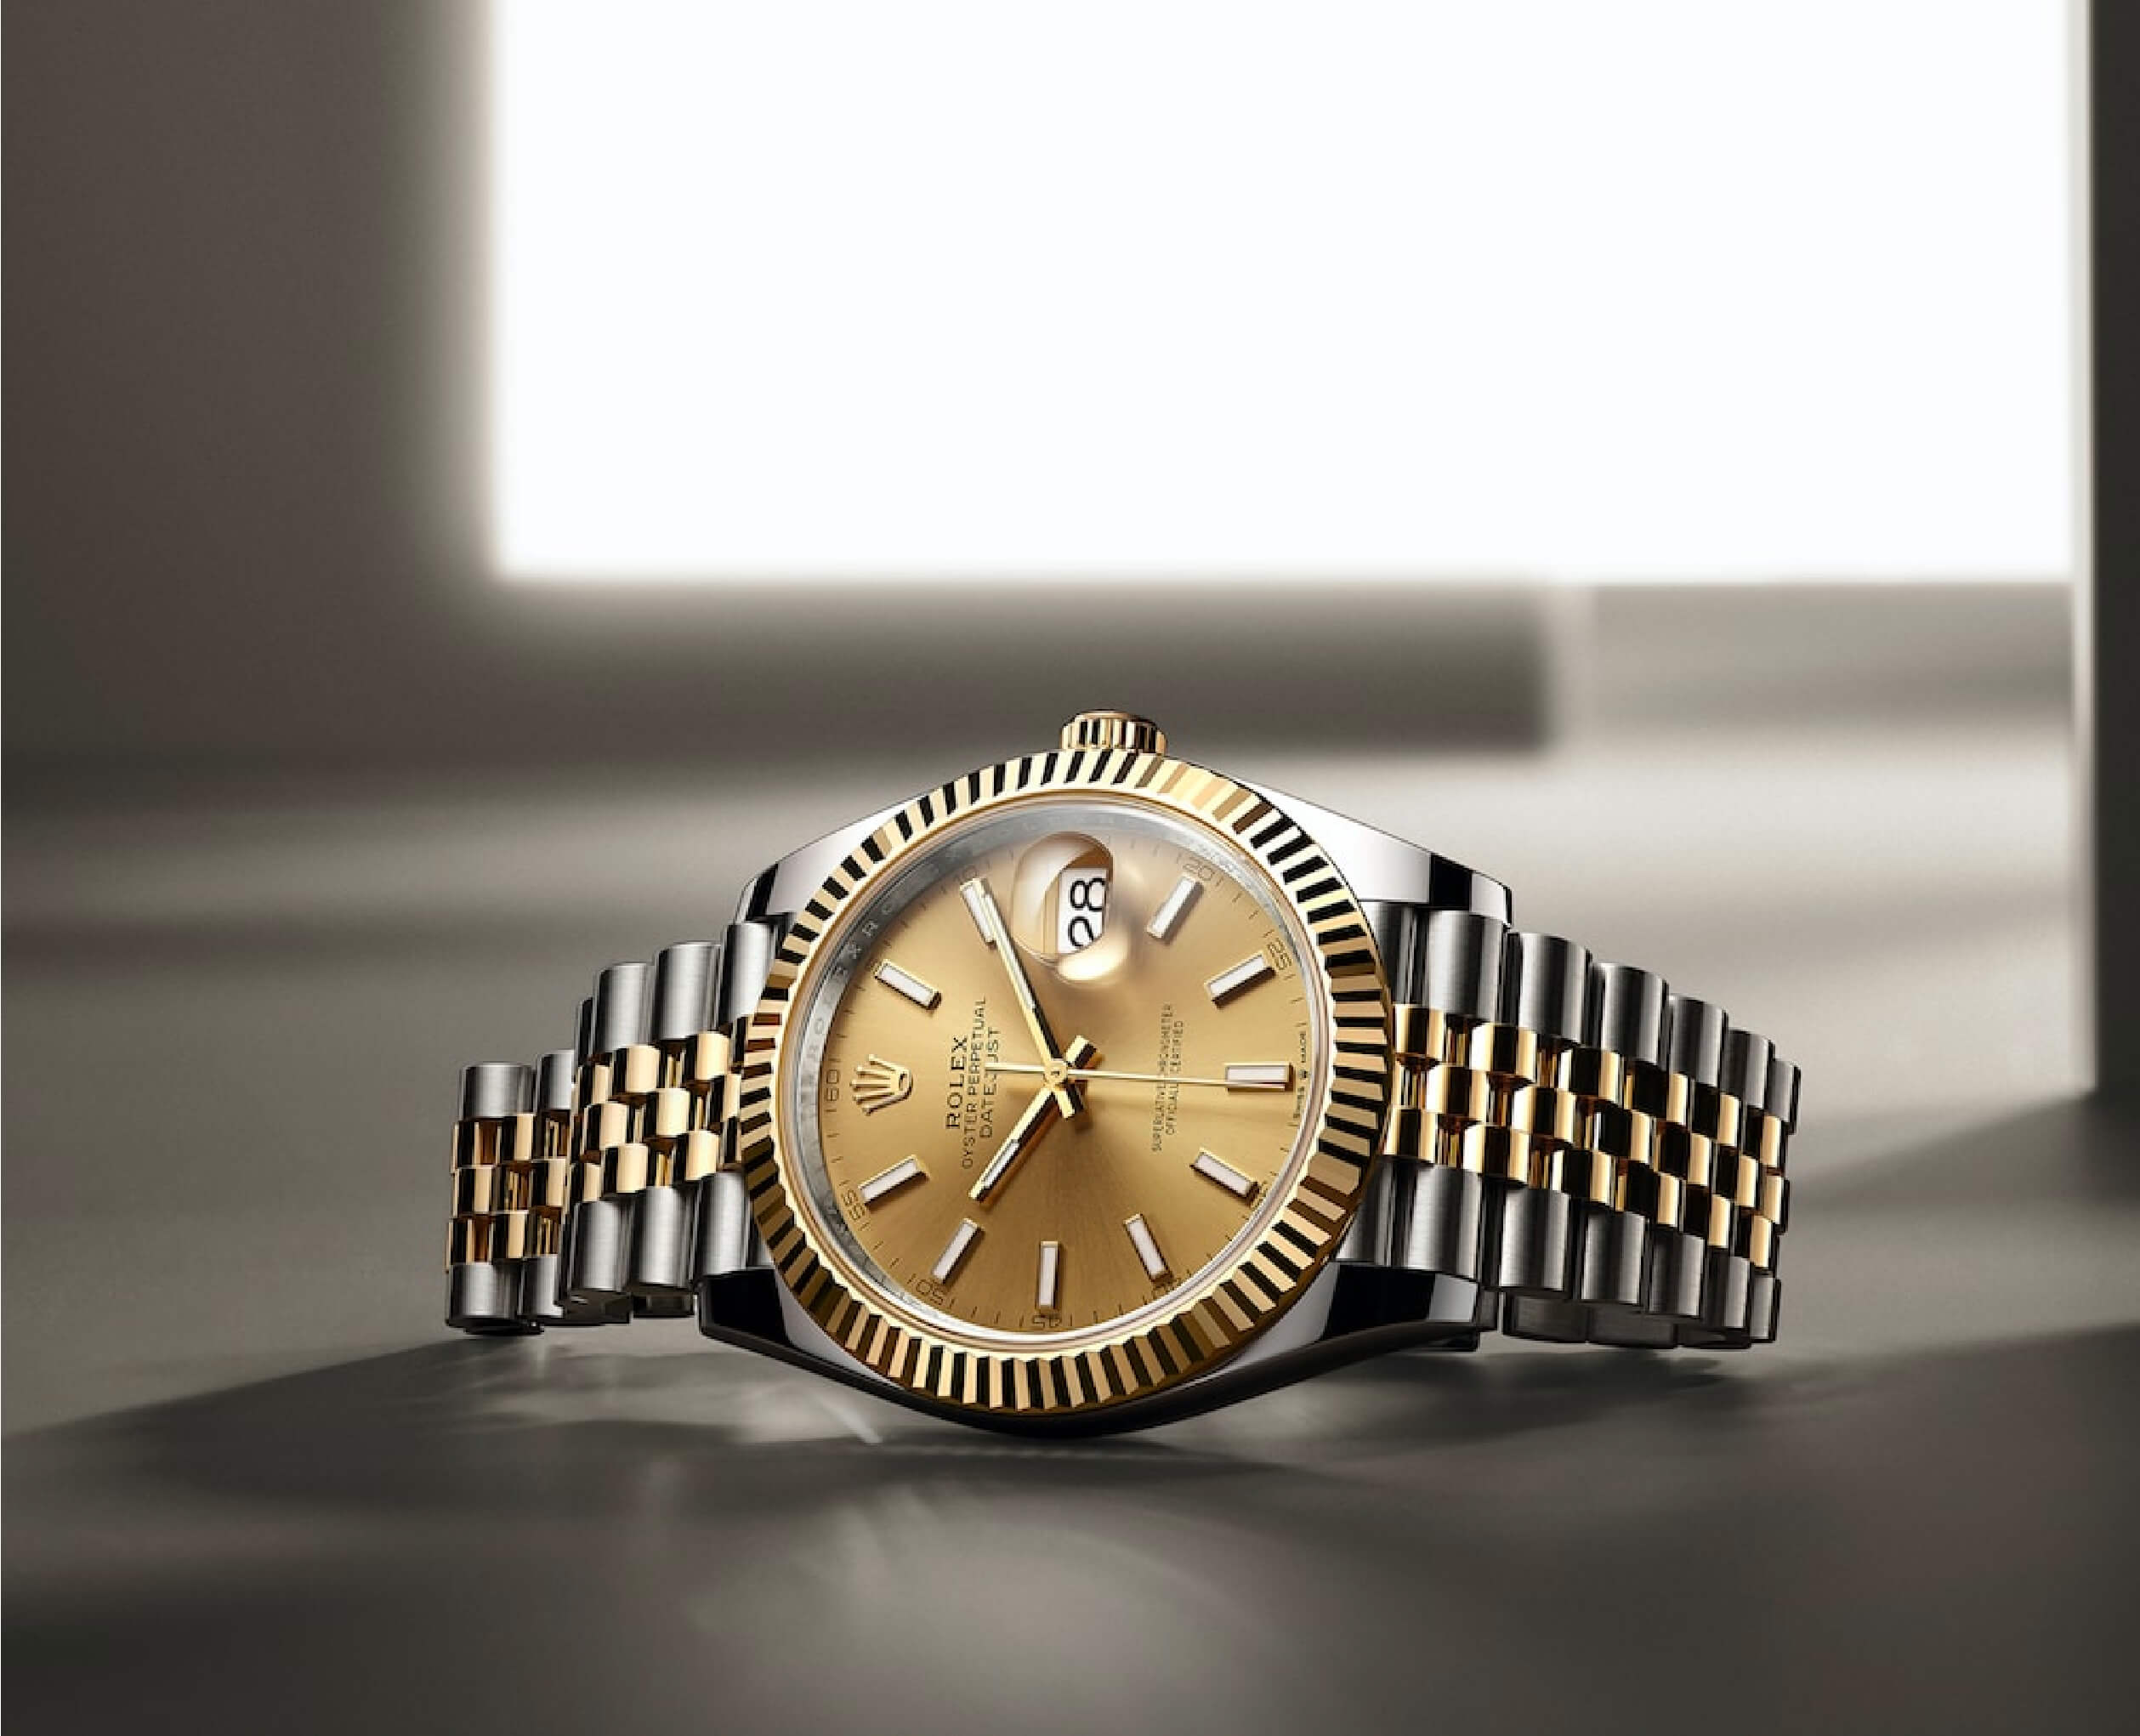 Datejust Collection | Wristwatches360